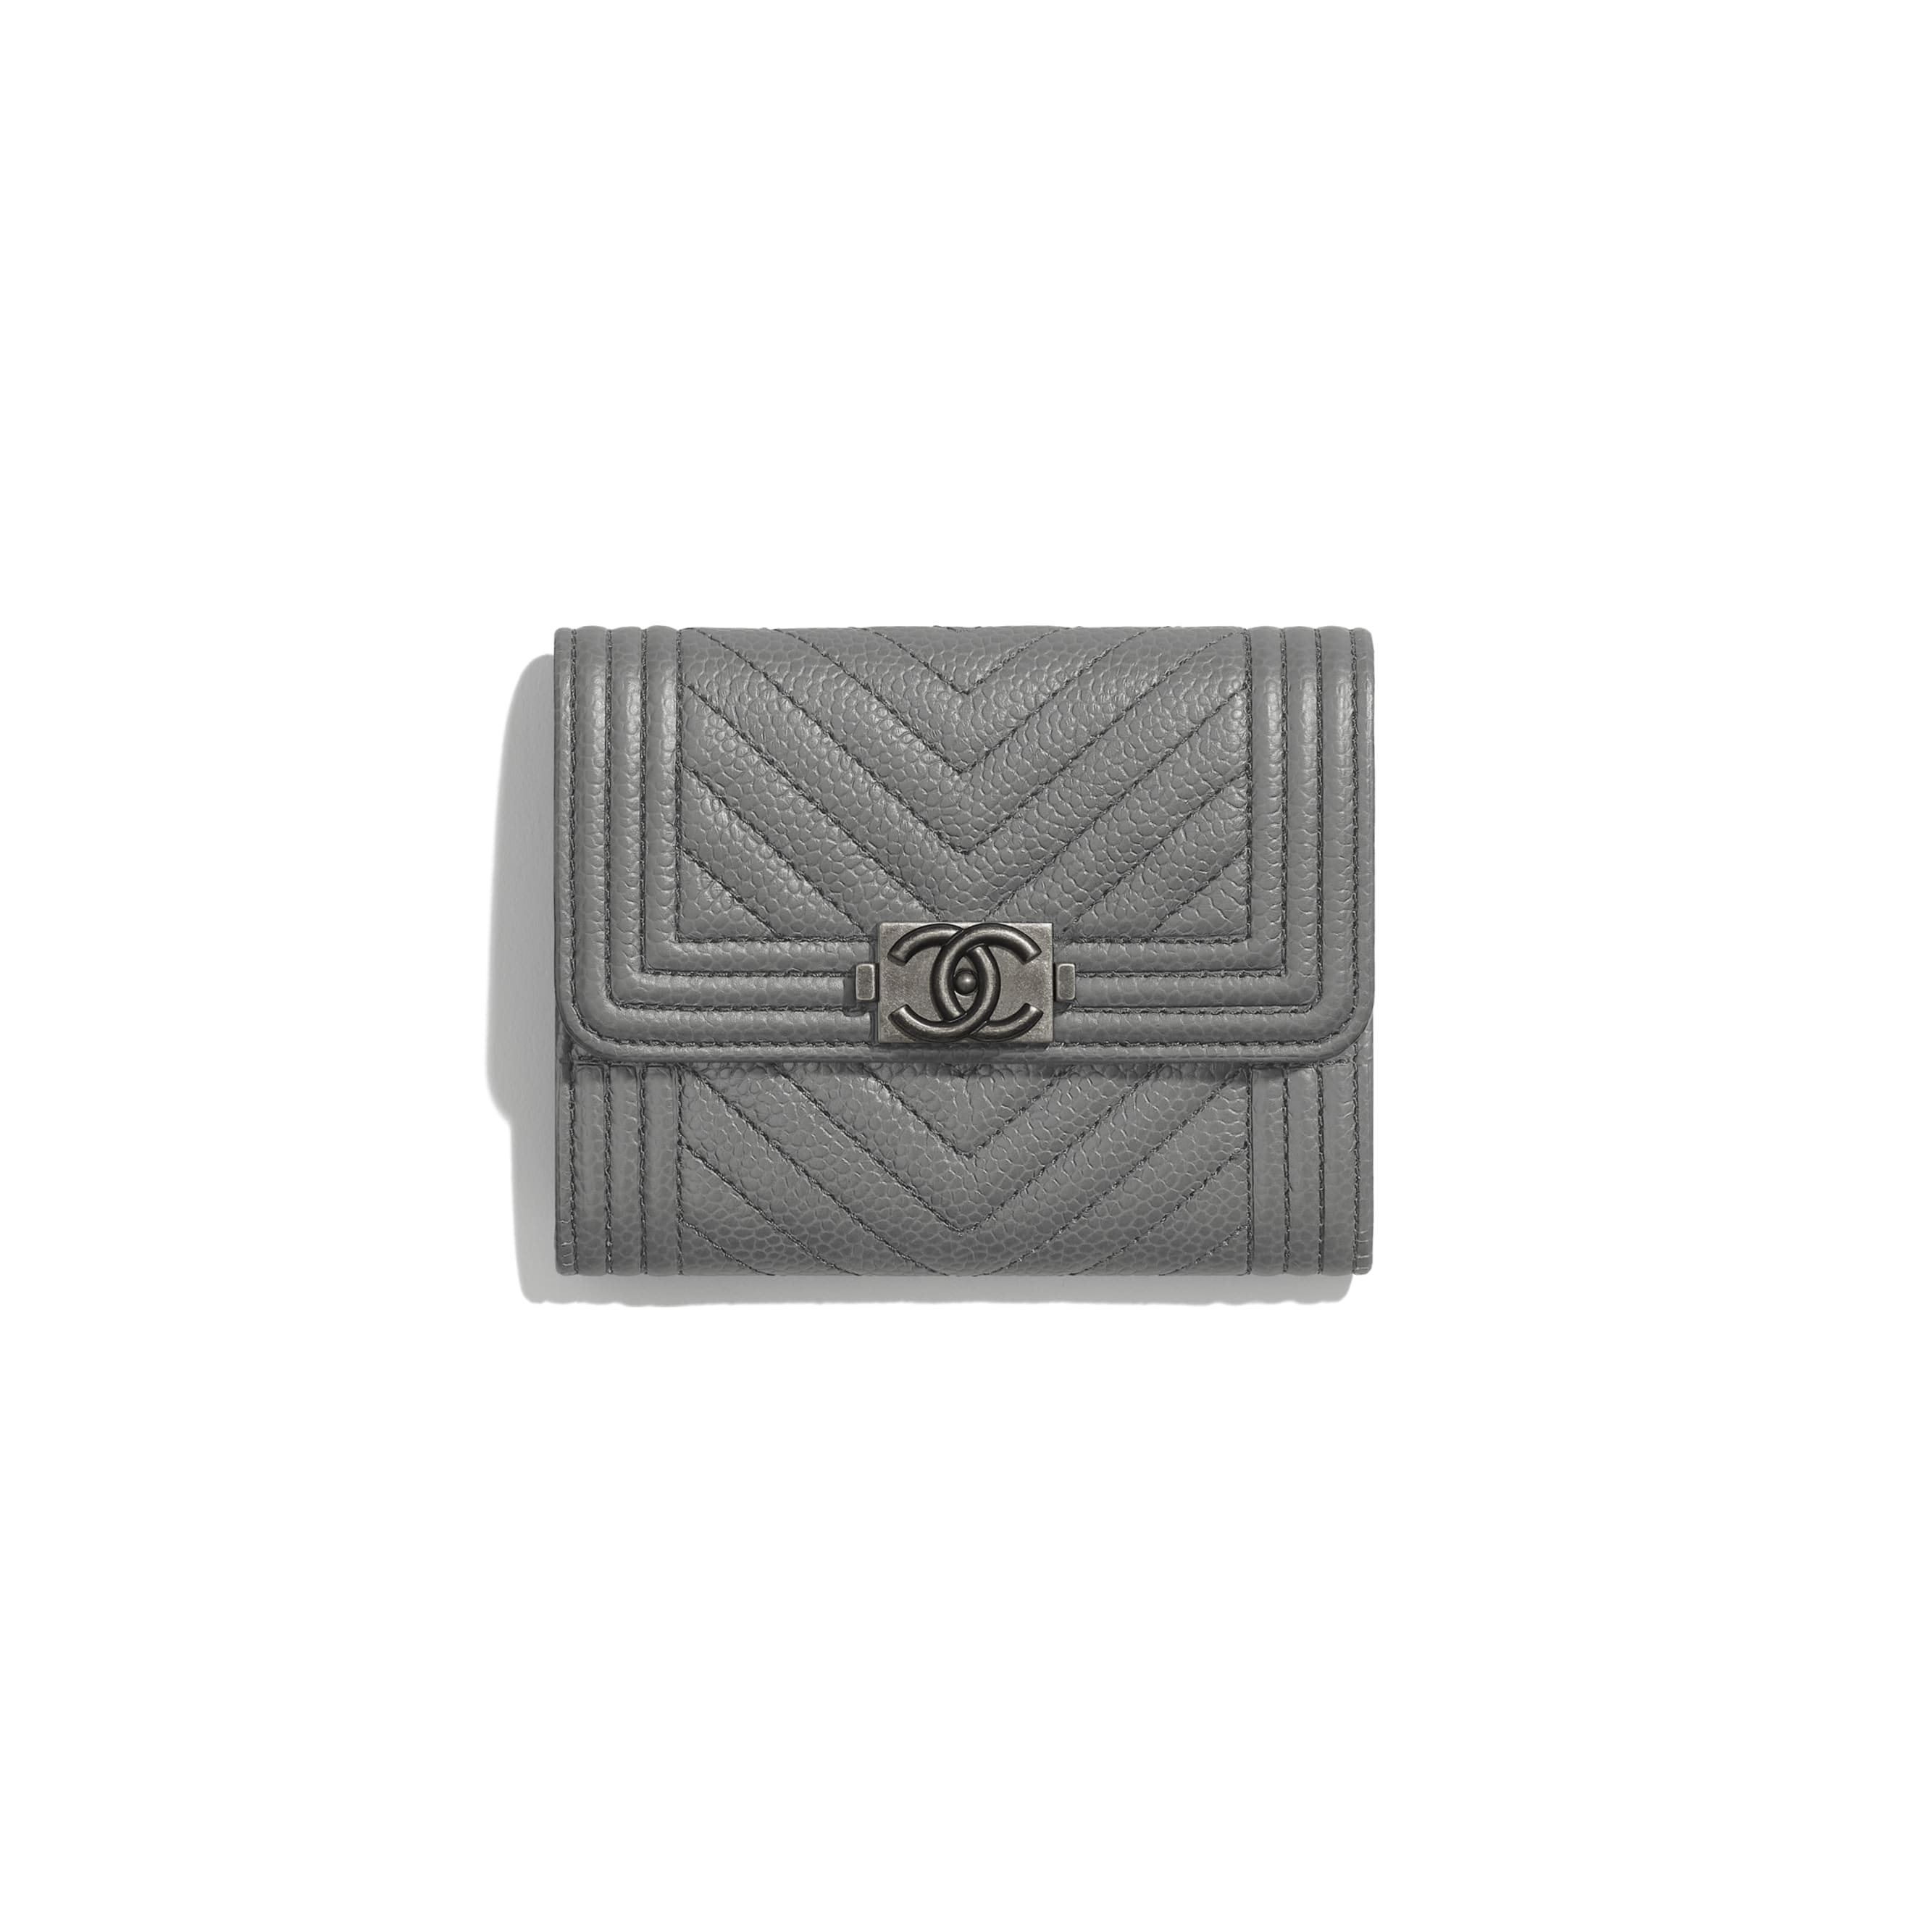 BOY CHANEL Flap Coin Purse - Grey - Grained Calfskin & Ruthenium-Finish Metal - CHANEL - Default view - see standard sized version